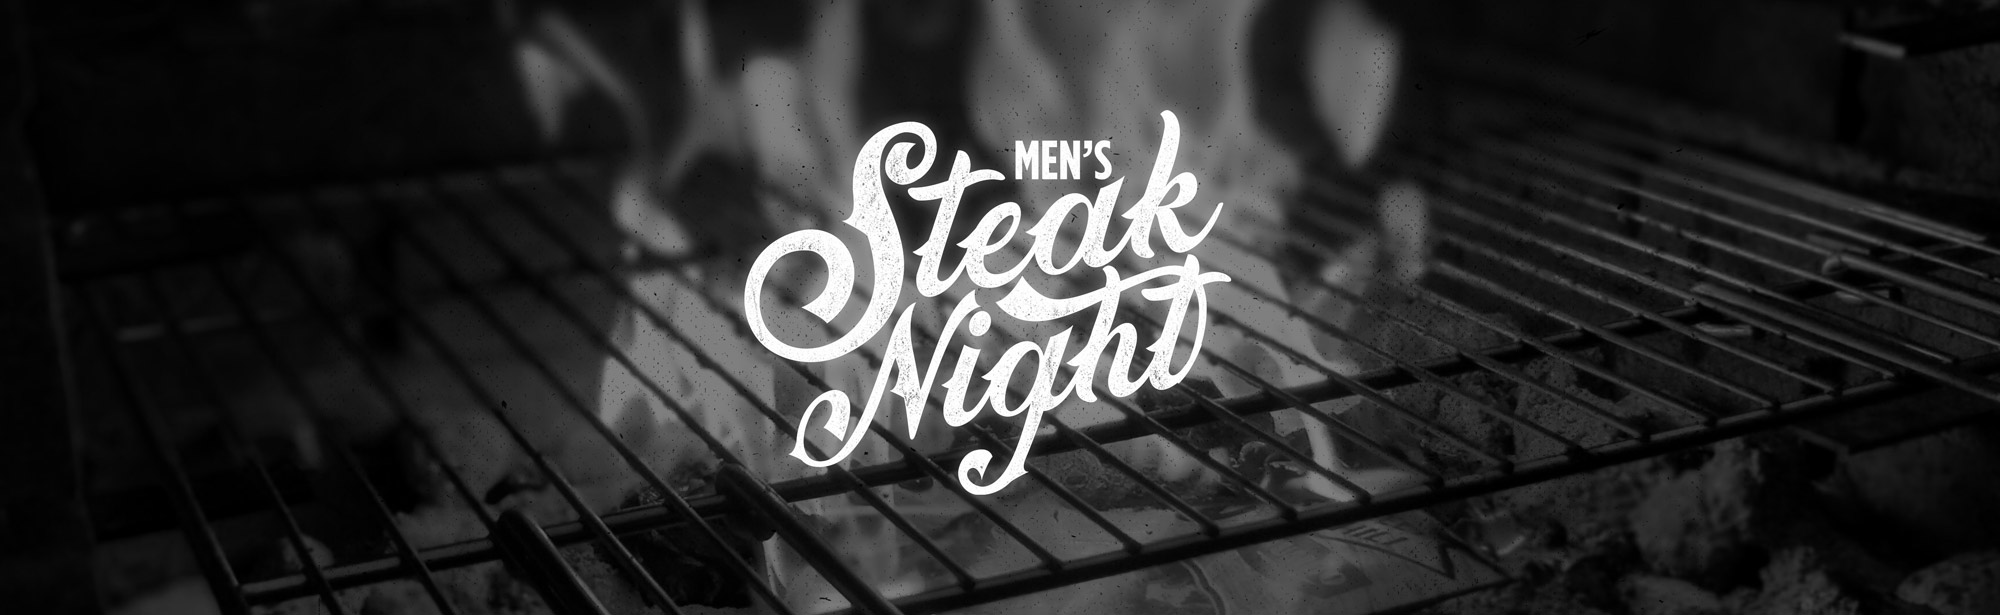 Men's Steak Night - Grace Community Church